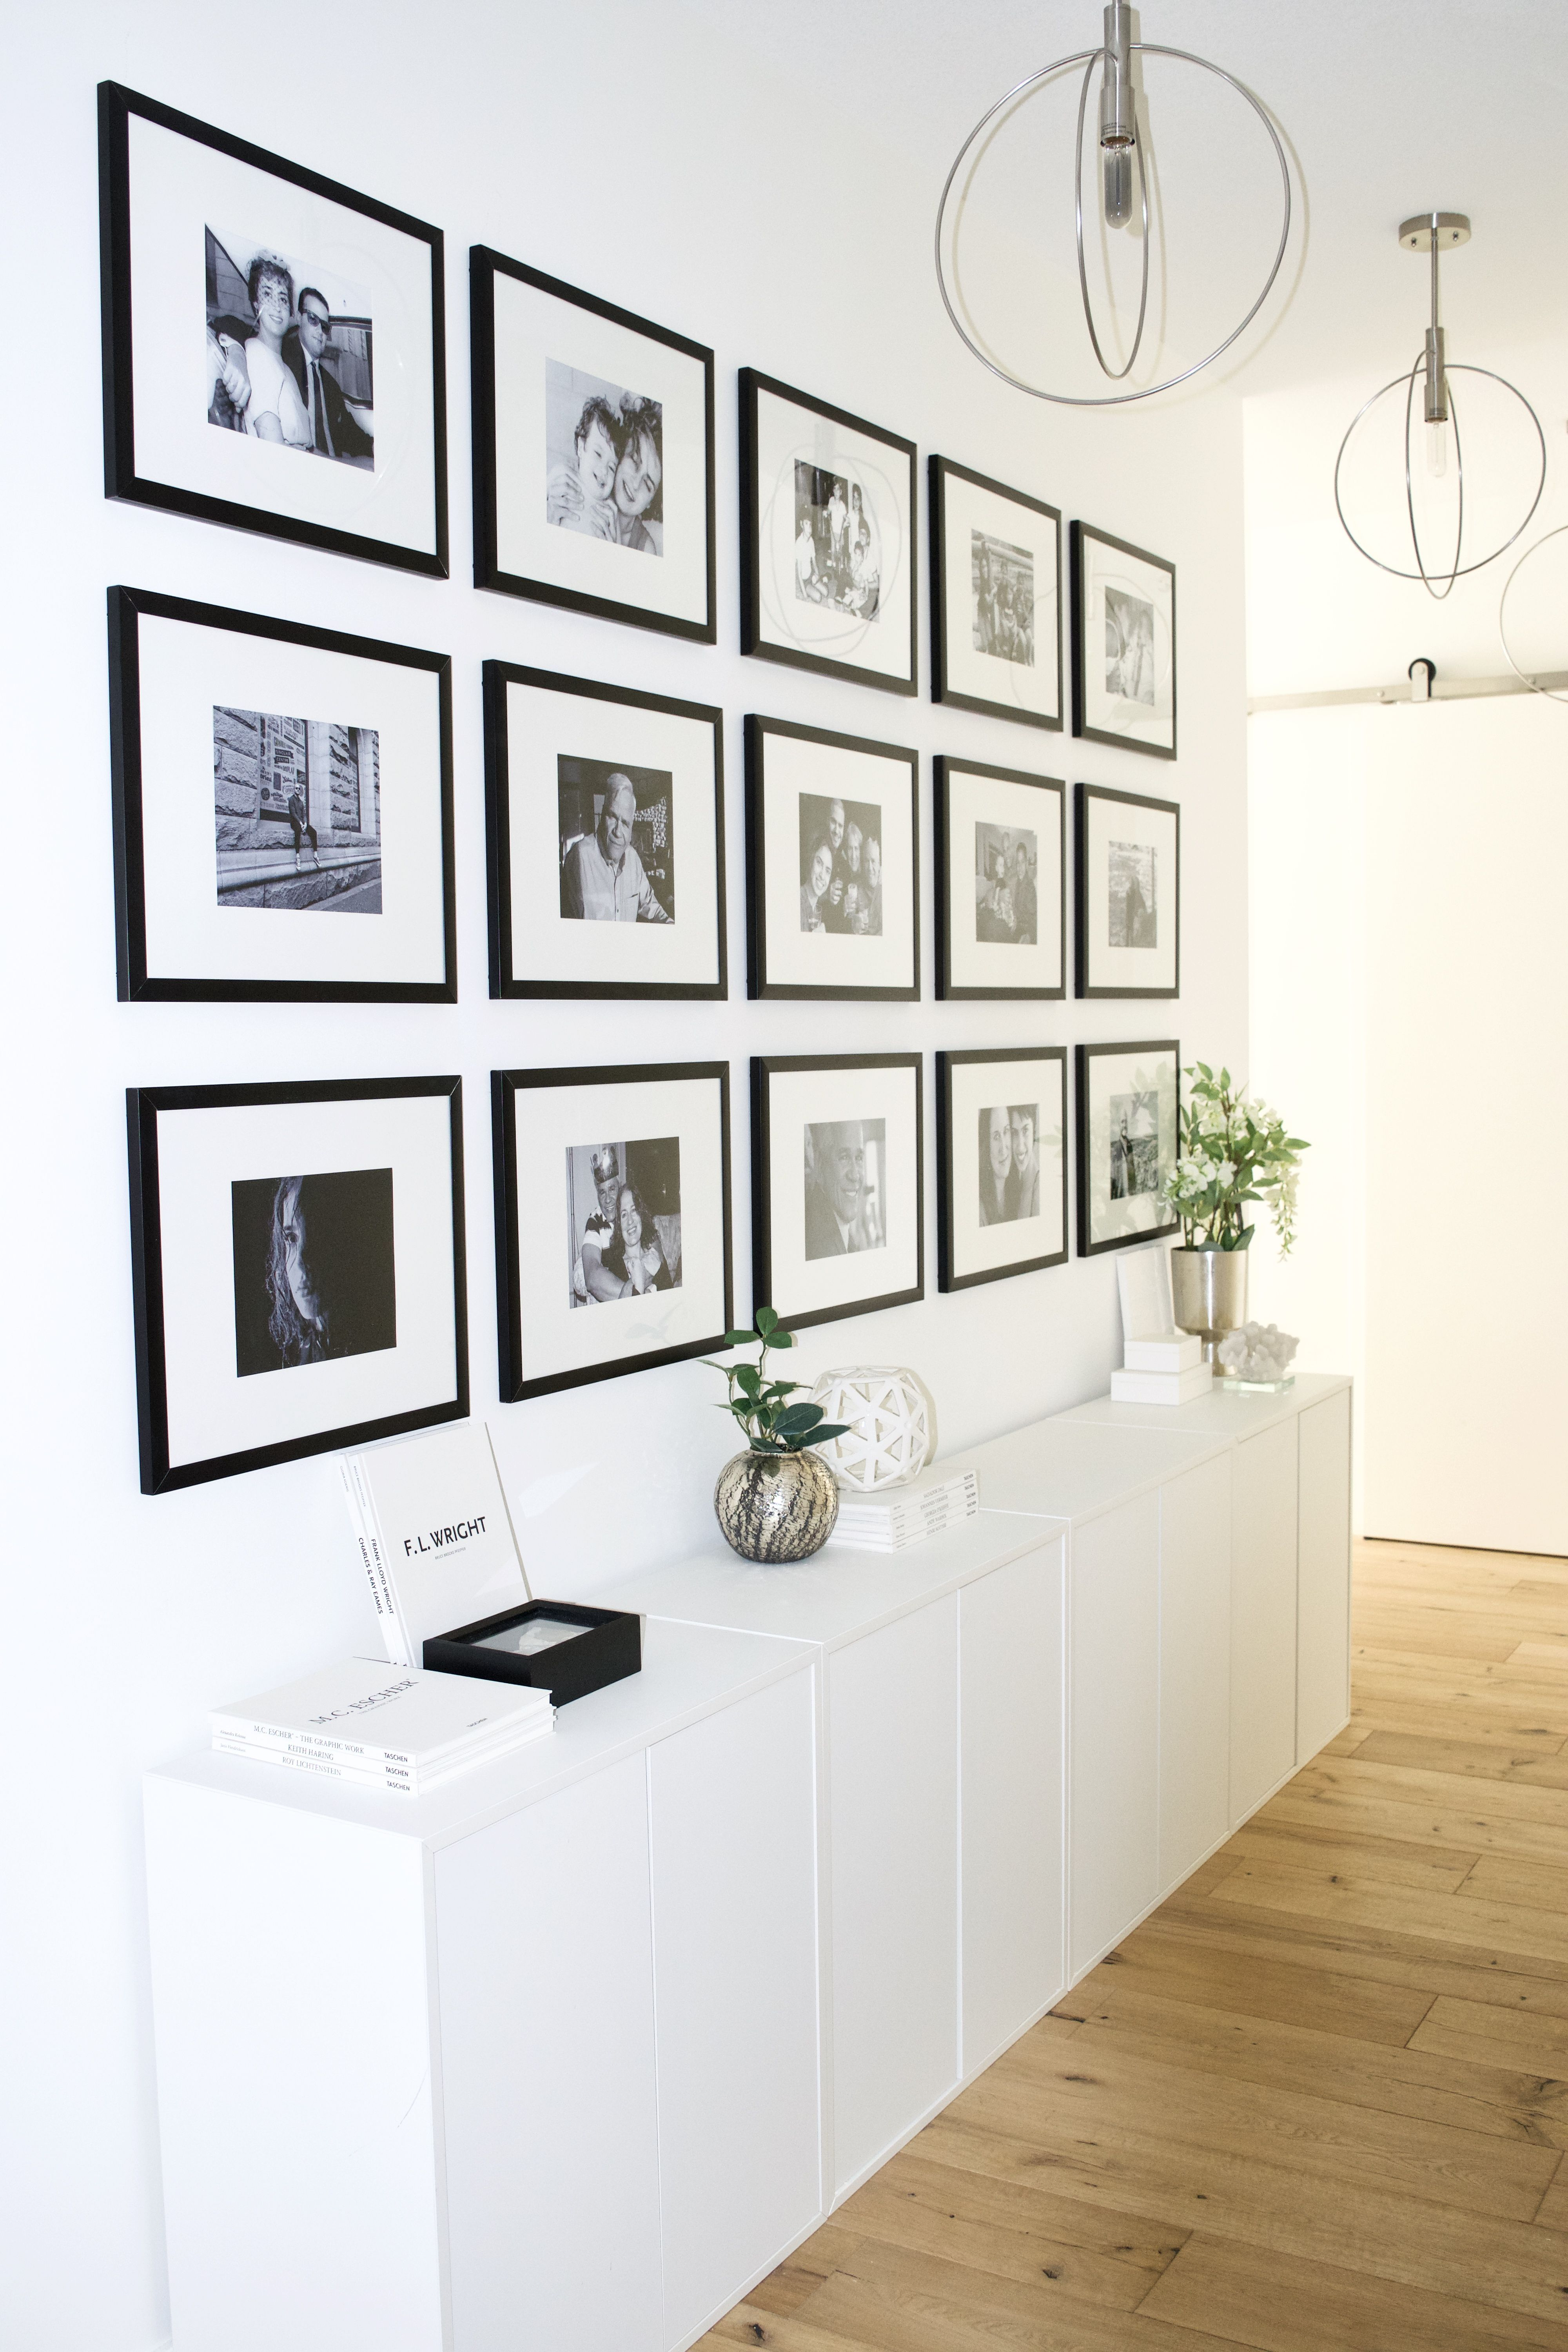 This hallway is right off the entrance of a beautiful modern Scandinavian apartment. A low bank of white Ikea Eket cabinets and a grid of black and white family photos create a carefully curated focal point for guests as they enter, and provides extra storage for small space living.This #hallway #is #right #off #the #entrance #of #a #beautiful #modern #Scandinavian #apartment. #A #low #bank #of #white #Ikea #Eket #cabinets #and #a #grid #of #black #and #white #family #photos #create #a #carefull